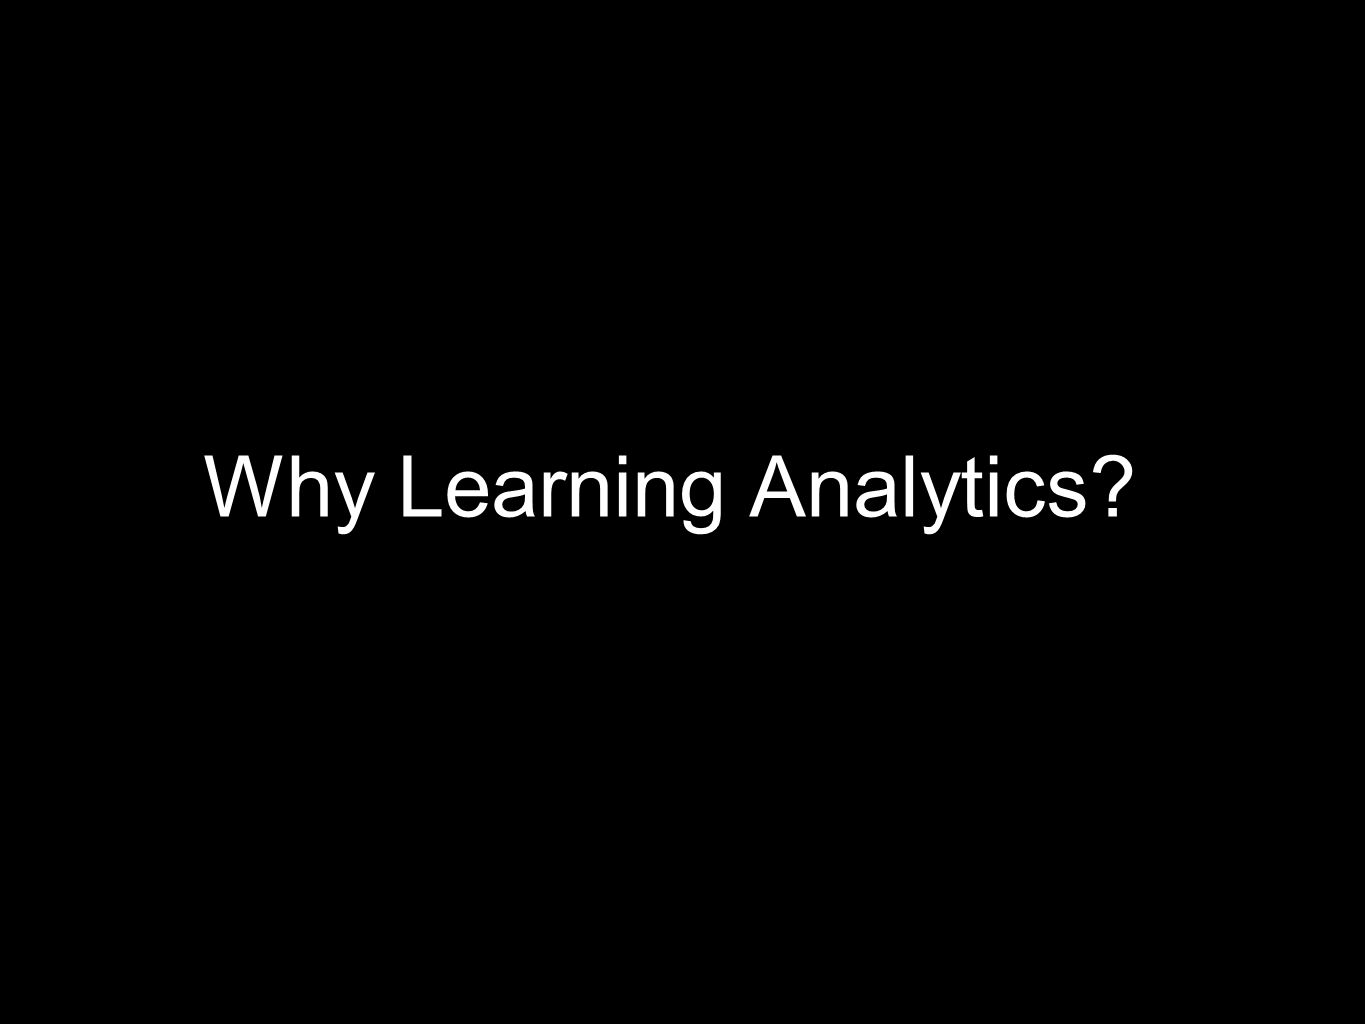 Why Learning Analytics